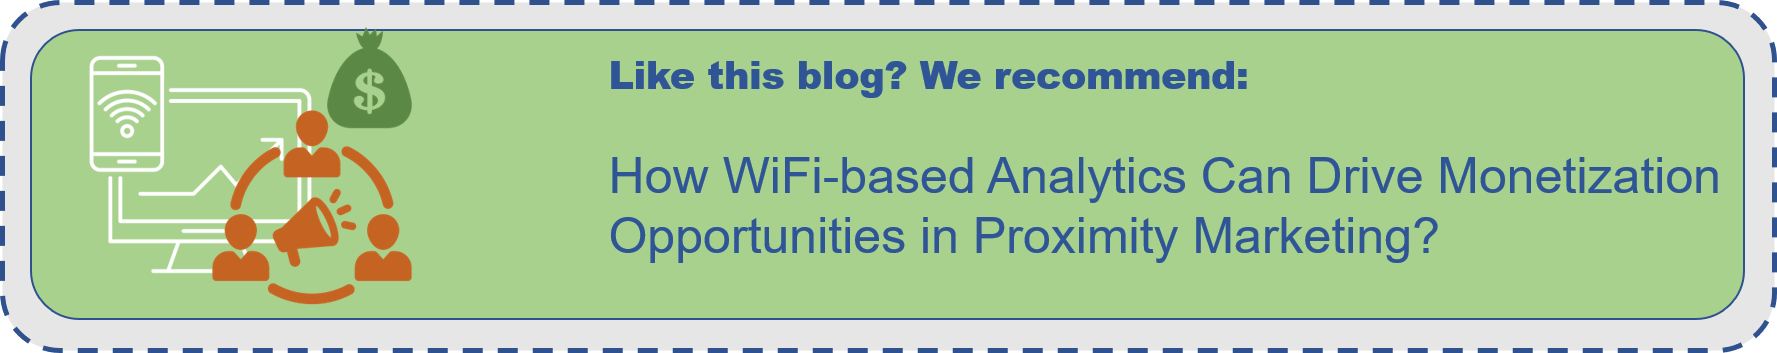 Wifi based analytics can drive monetization opportunities in proximity marketing